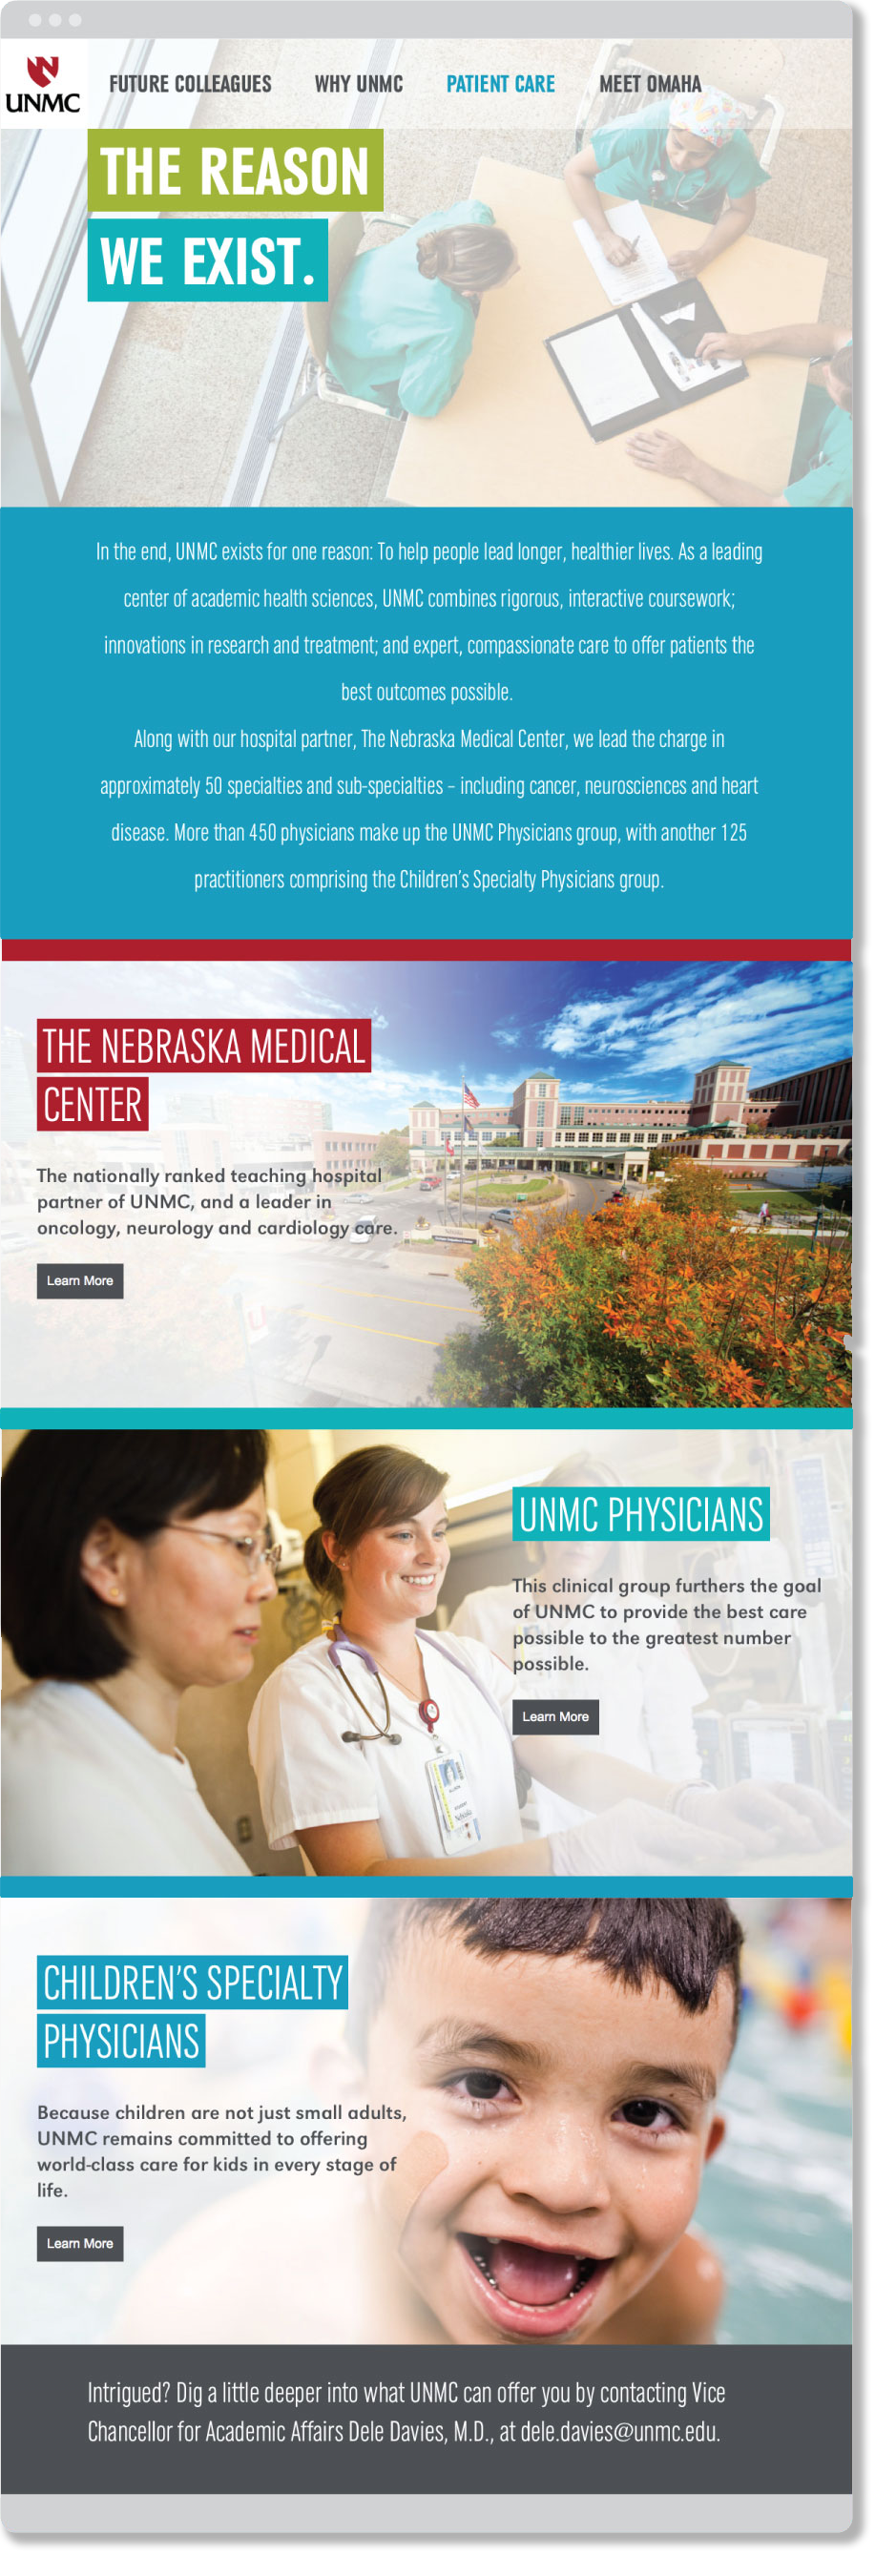 Why UNMC patient care